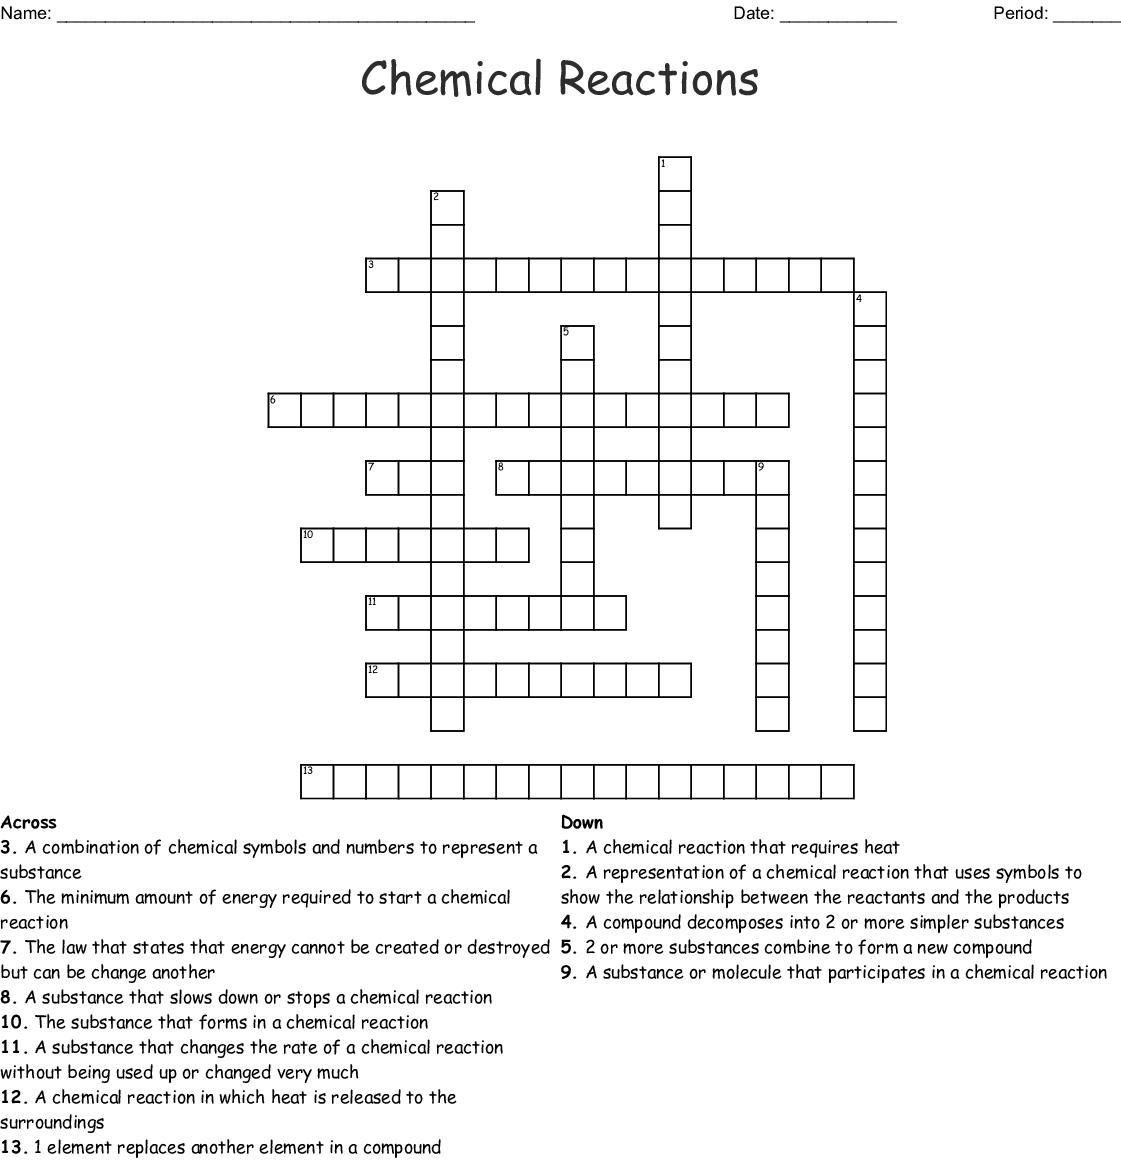 Chemical Reactions Review Worksheet Answers